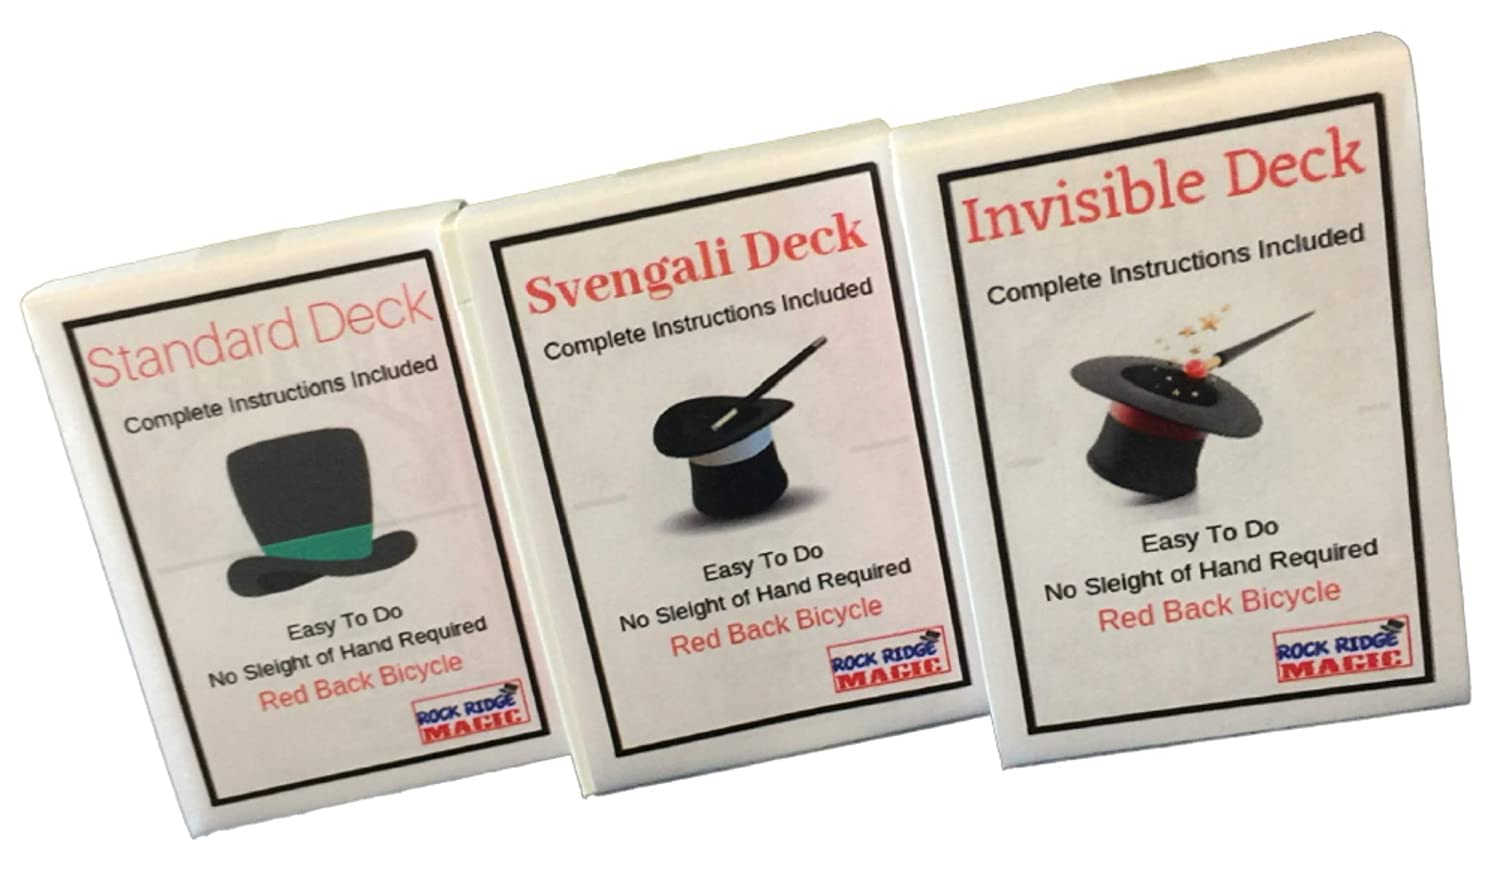 Svengali and a Standard Deck Red Back by Rock Ridge Magic Invisible Masters Bicycle Combo